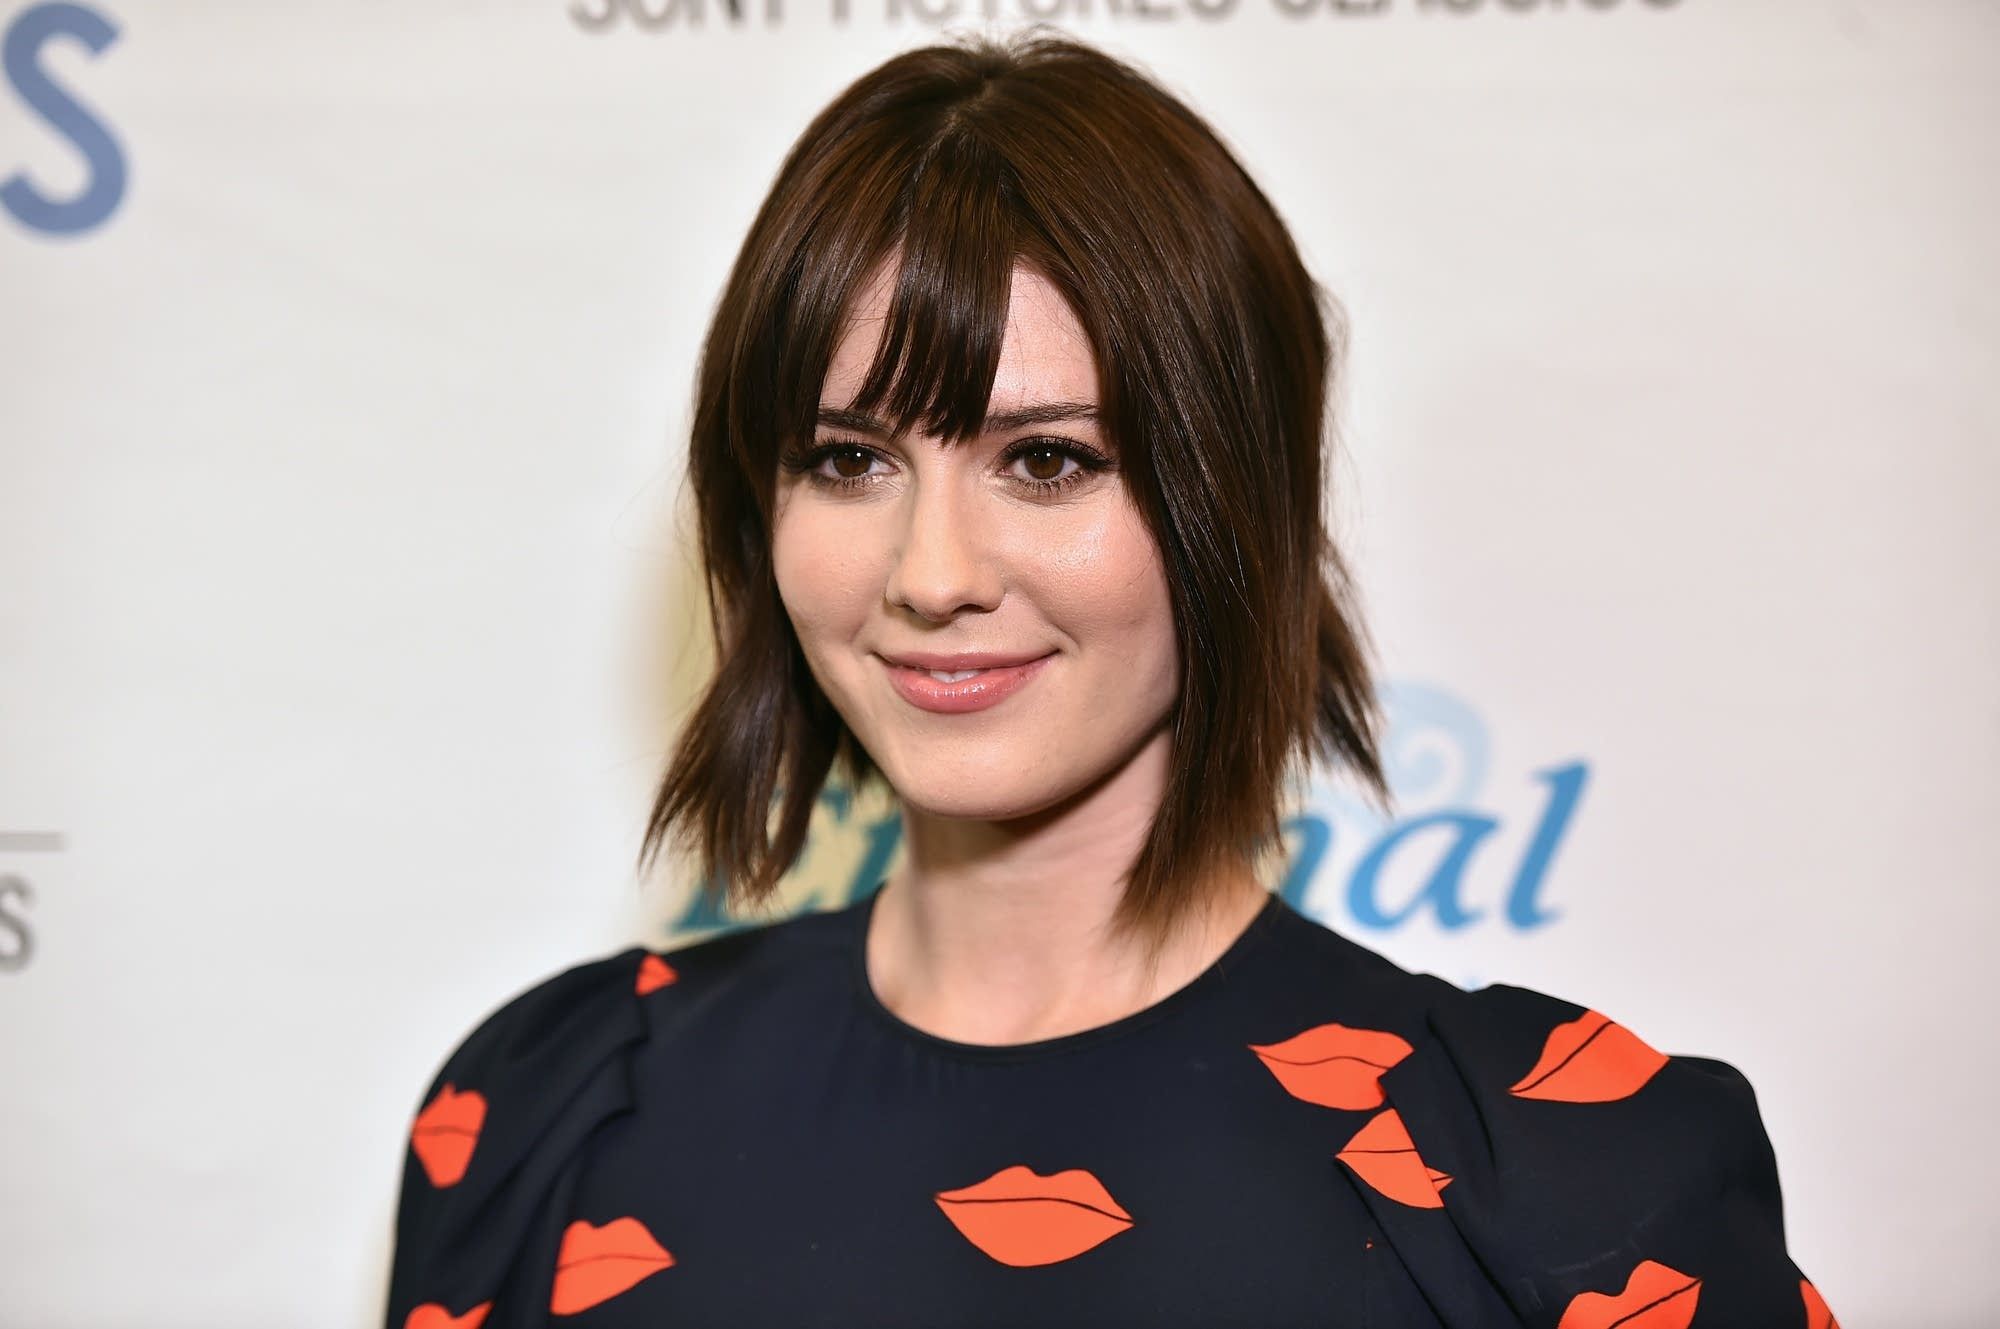 Pic Mary Elizabeth Winstead nudes (69 foto and video), Tits, Cleavage, Instagram, bra 2015